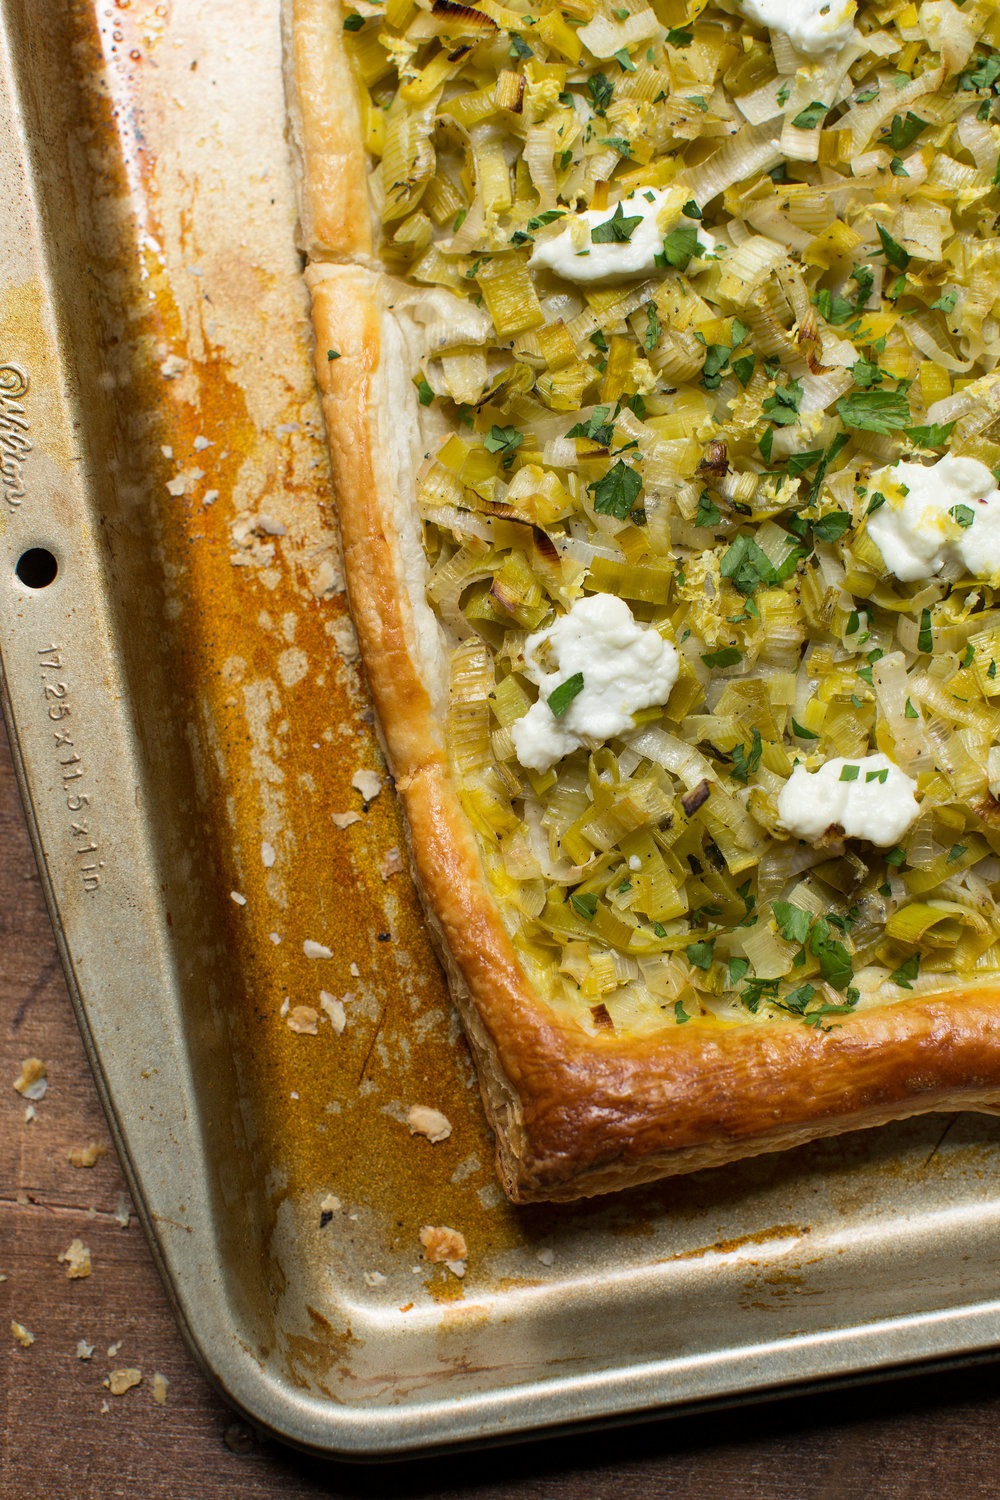 This recipe for a Leek and Goat Cheese Tart is a great vegetarian meal. Recipe can be found on CTEatsOut.com